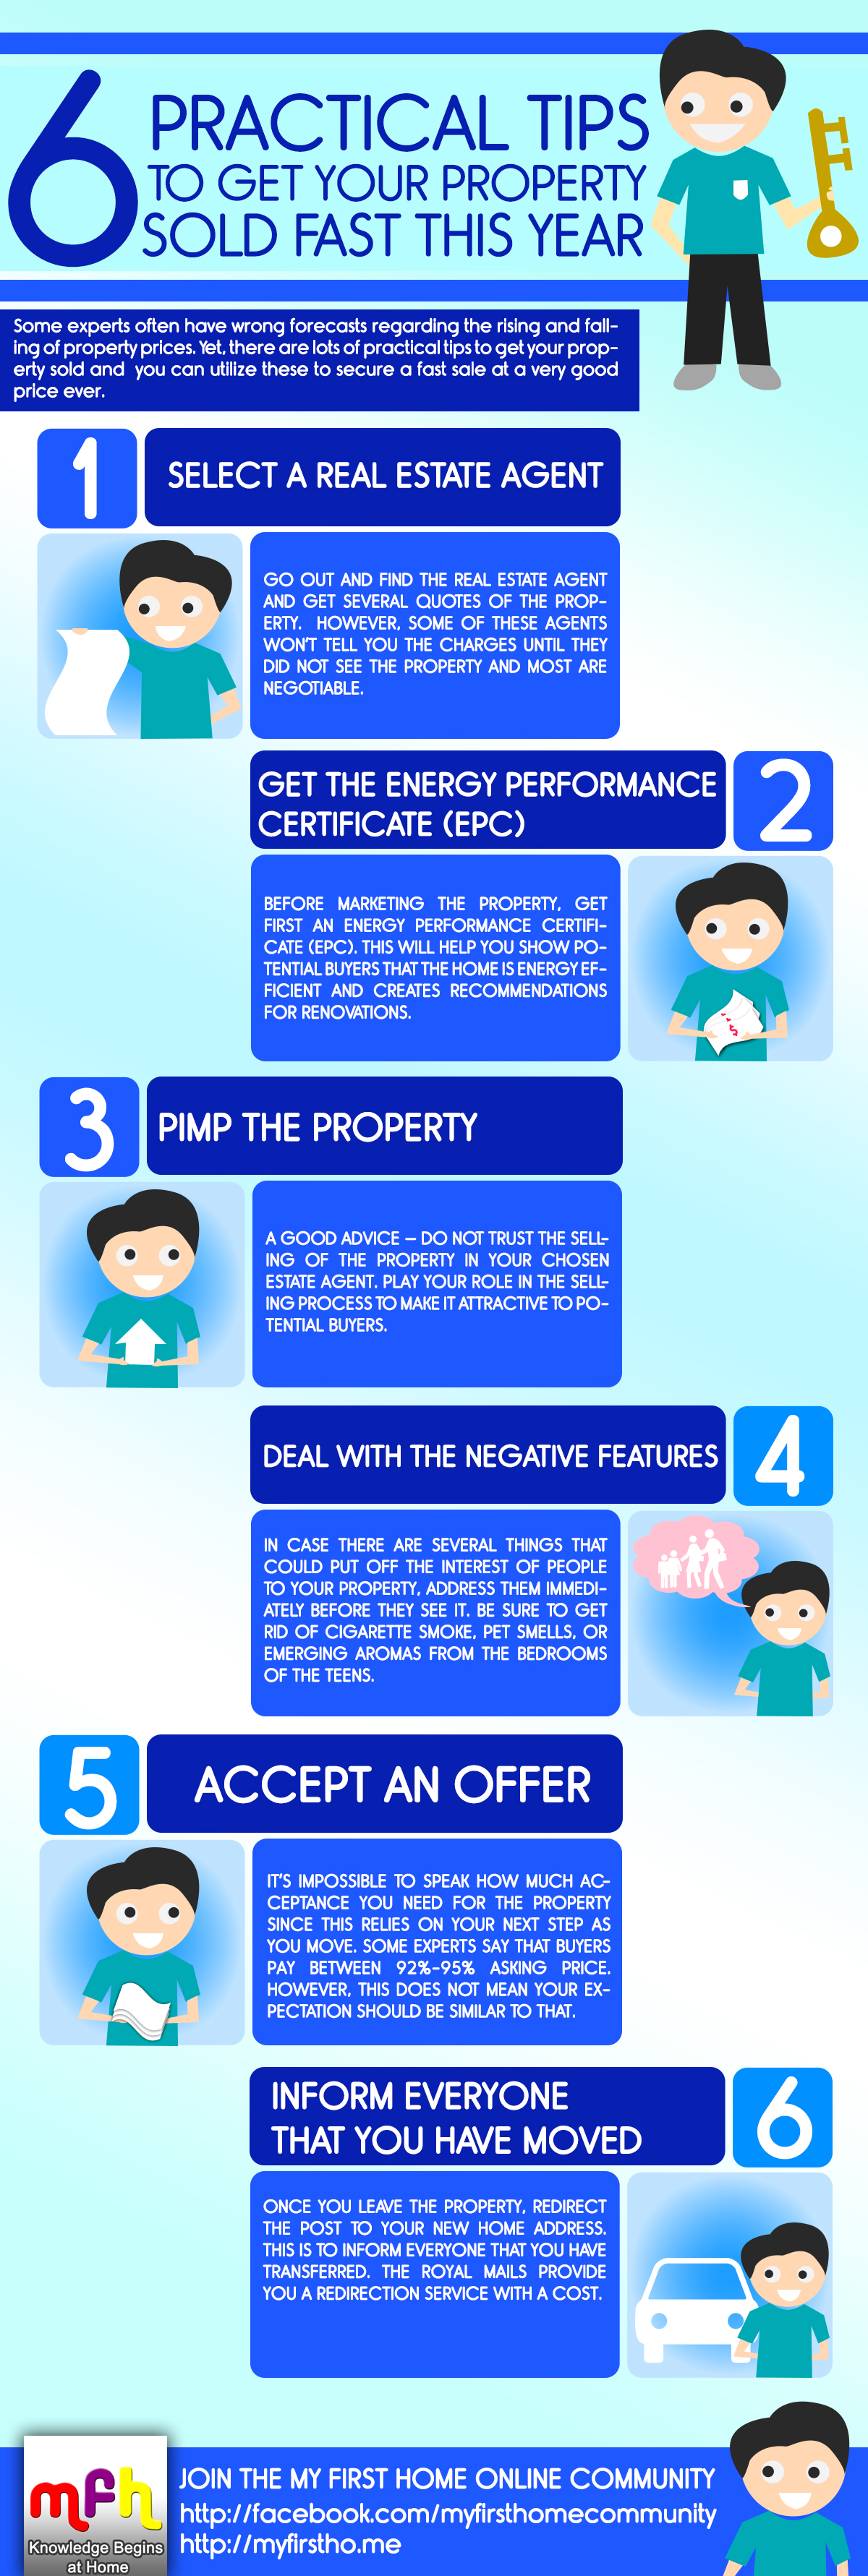 Want To Your Home 6 Practical Tips Get Property Sold Fast This Year